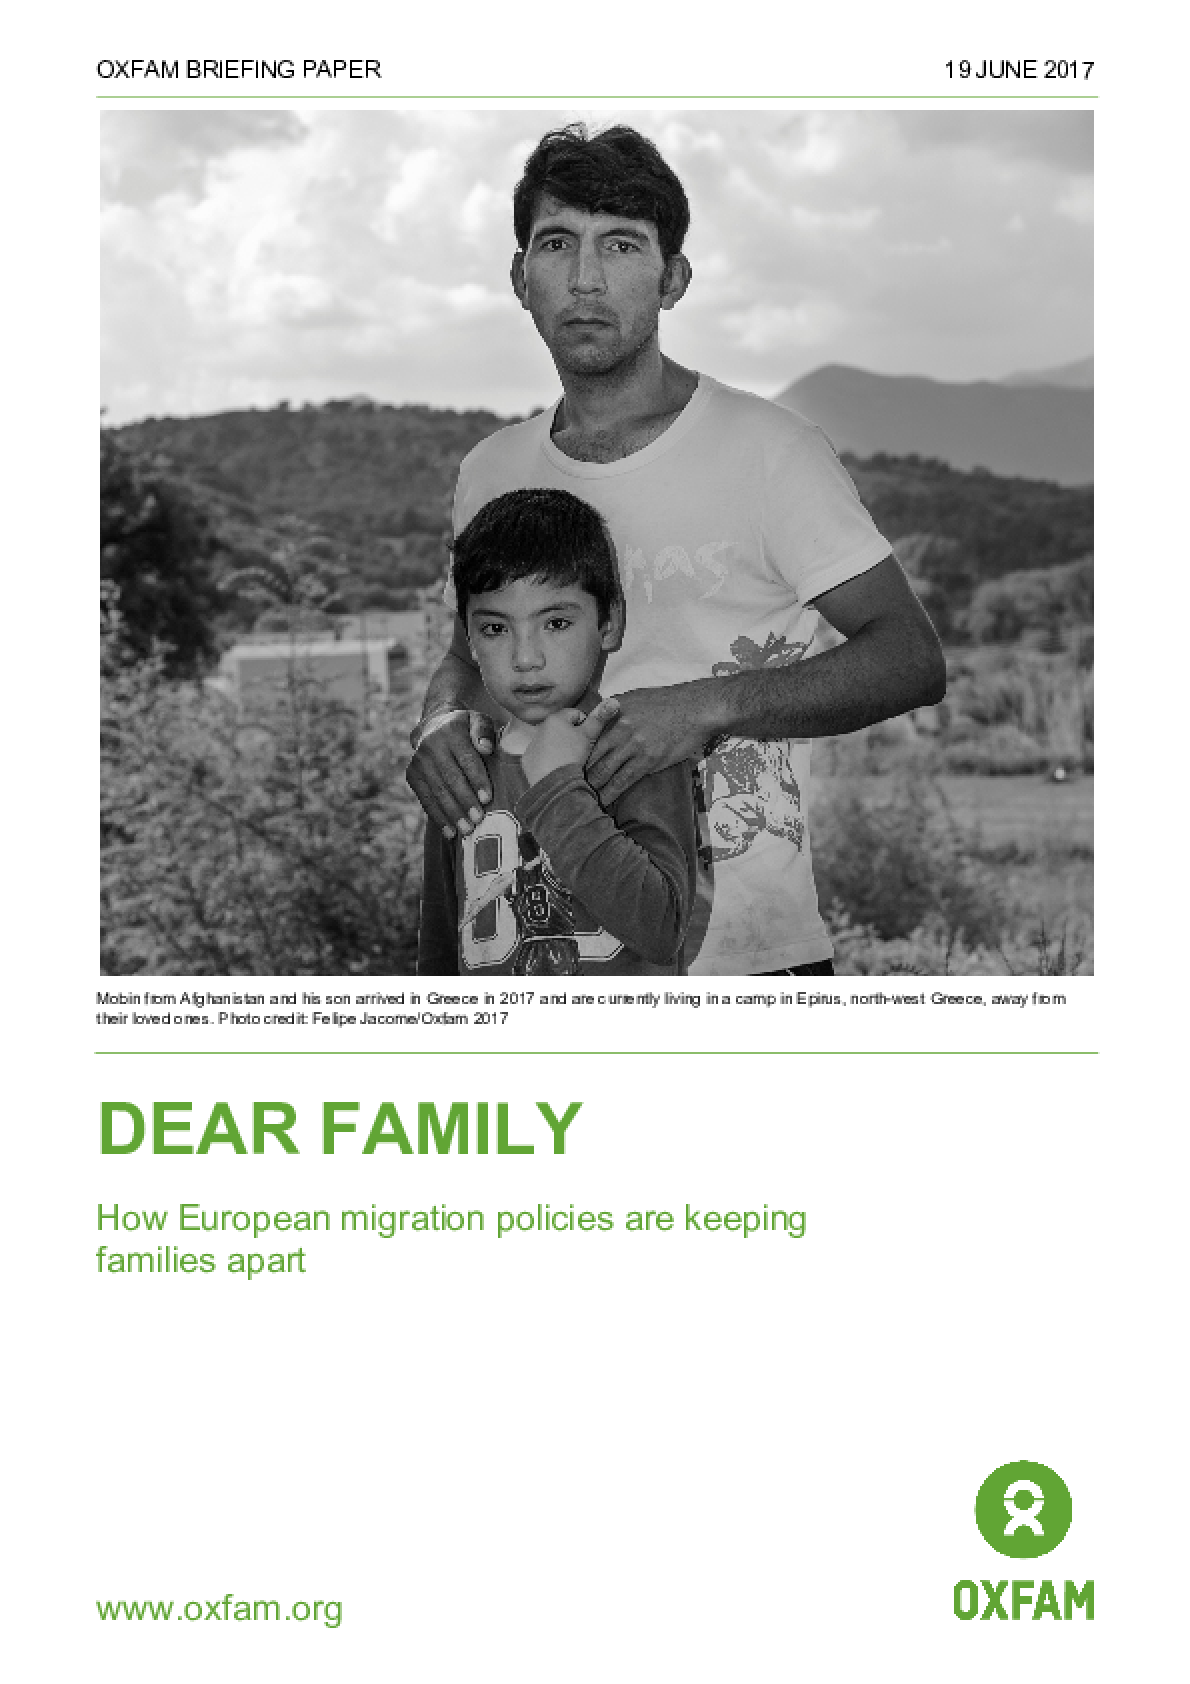 Dear Family: How European migration policies are keeping families apart